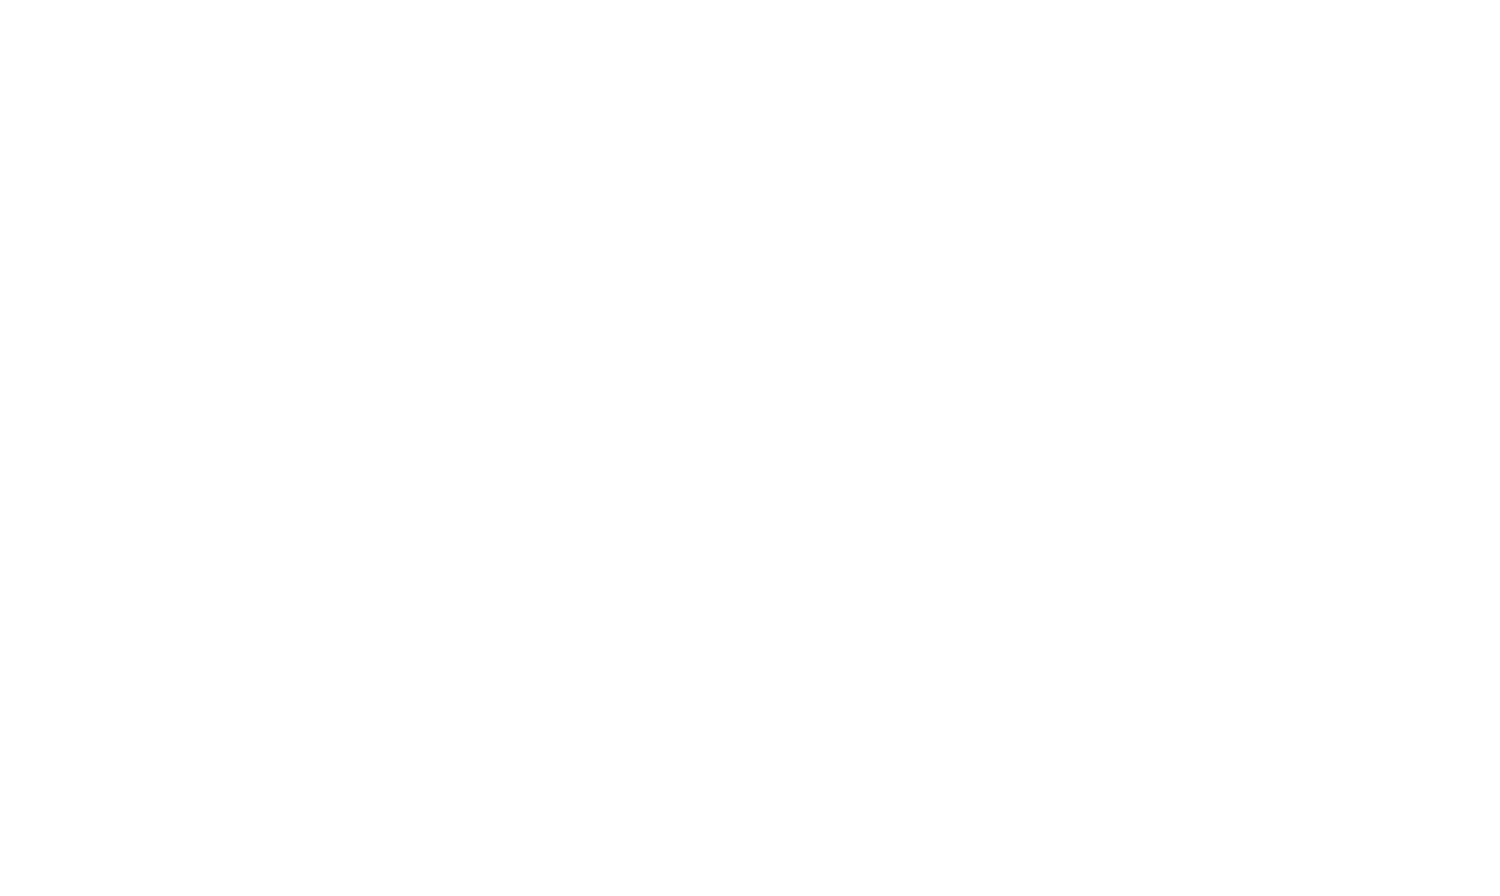 McKenzie Architectural Kitchens